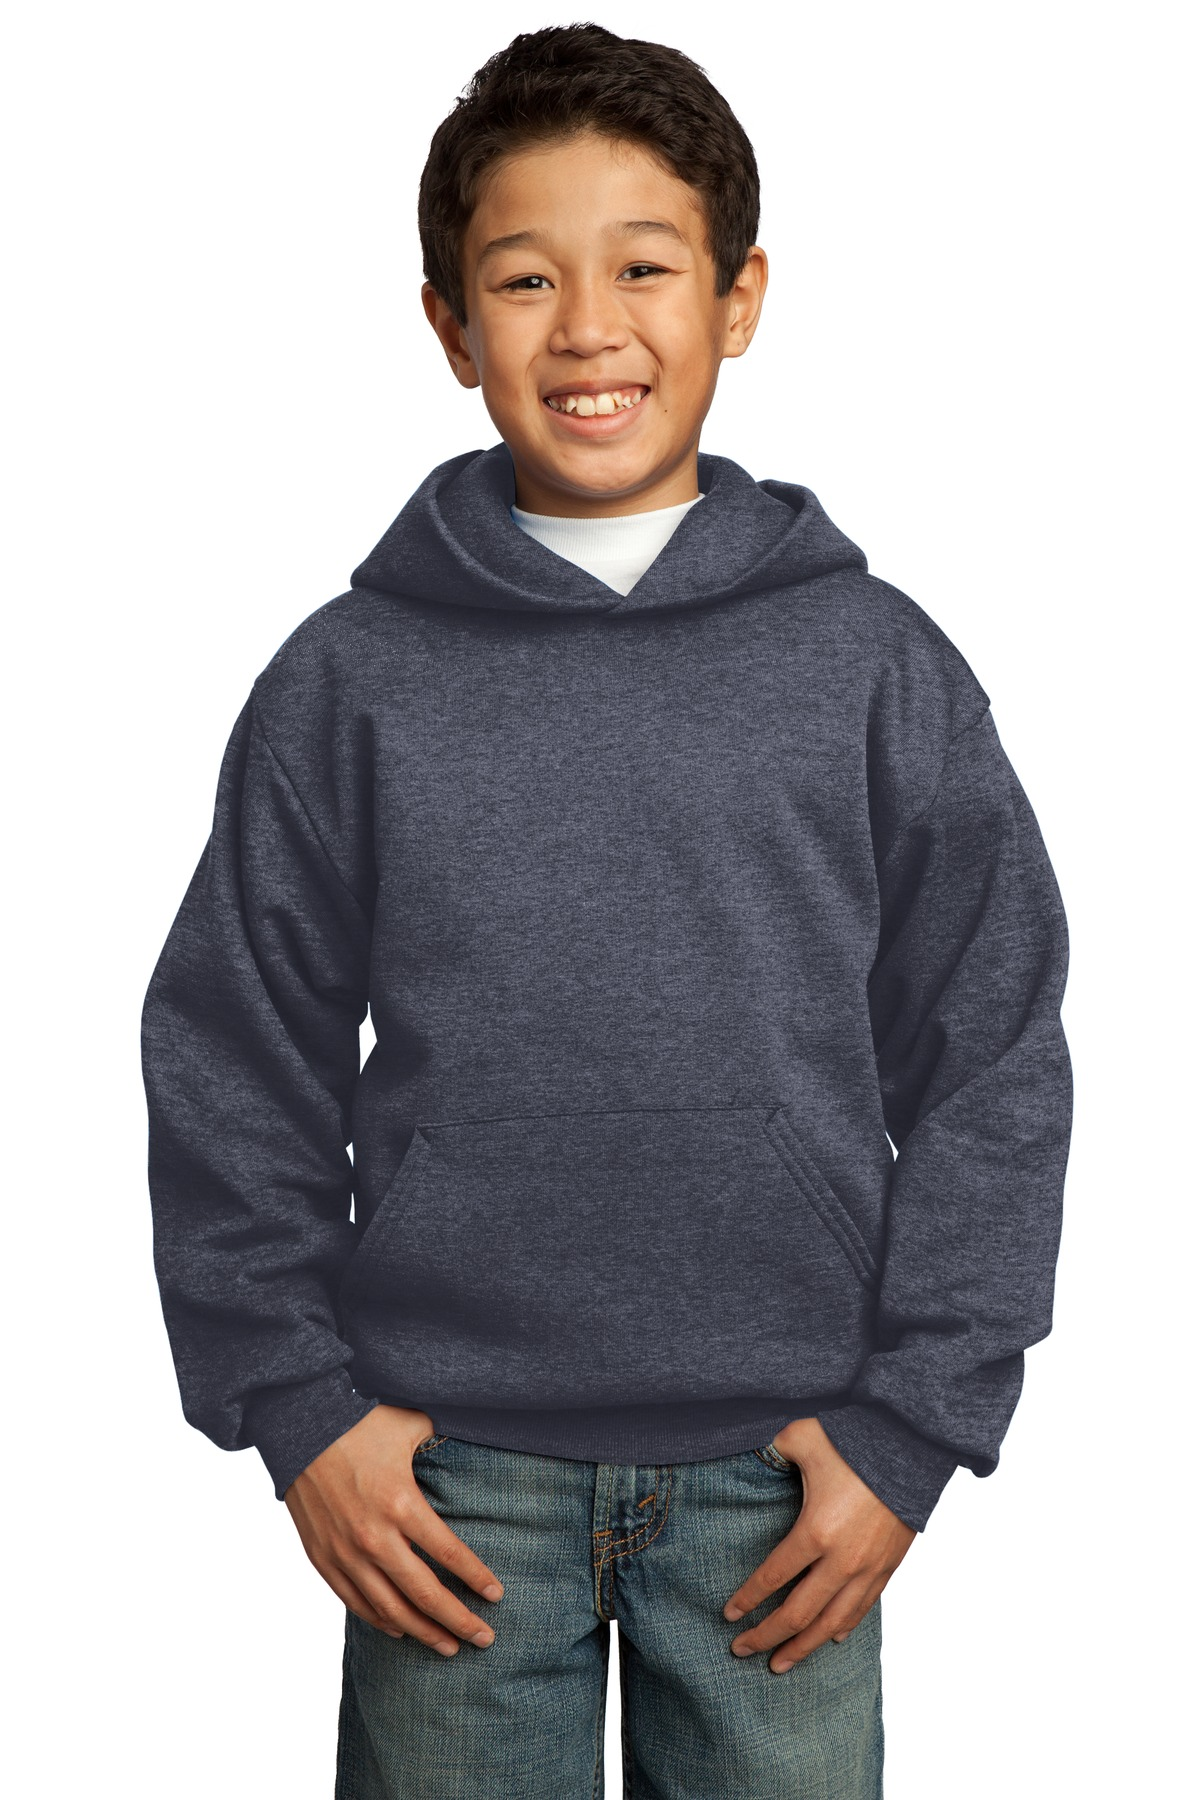 Port & Company ®  - Youth Core Fleece Pullover Hooded Sweatshirt.  PC90YH - Heather Navy